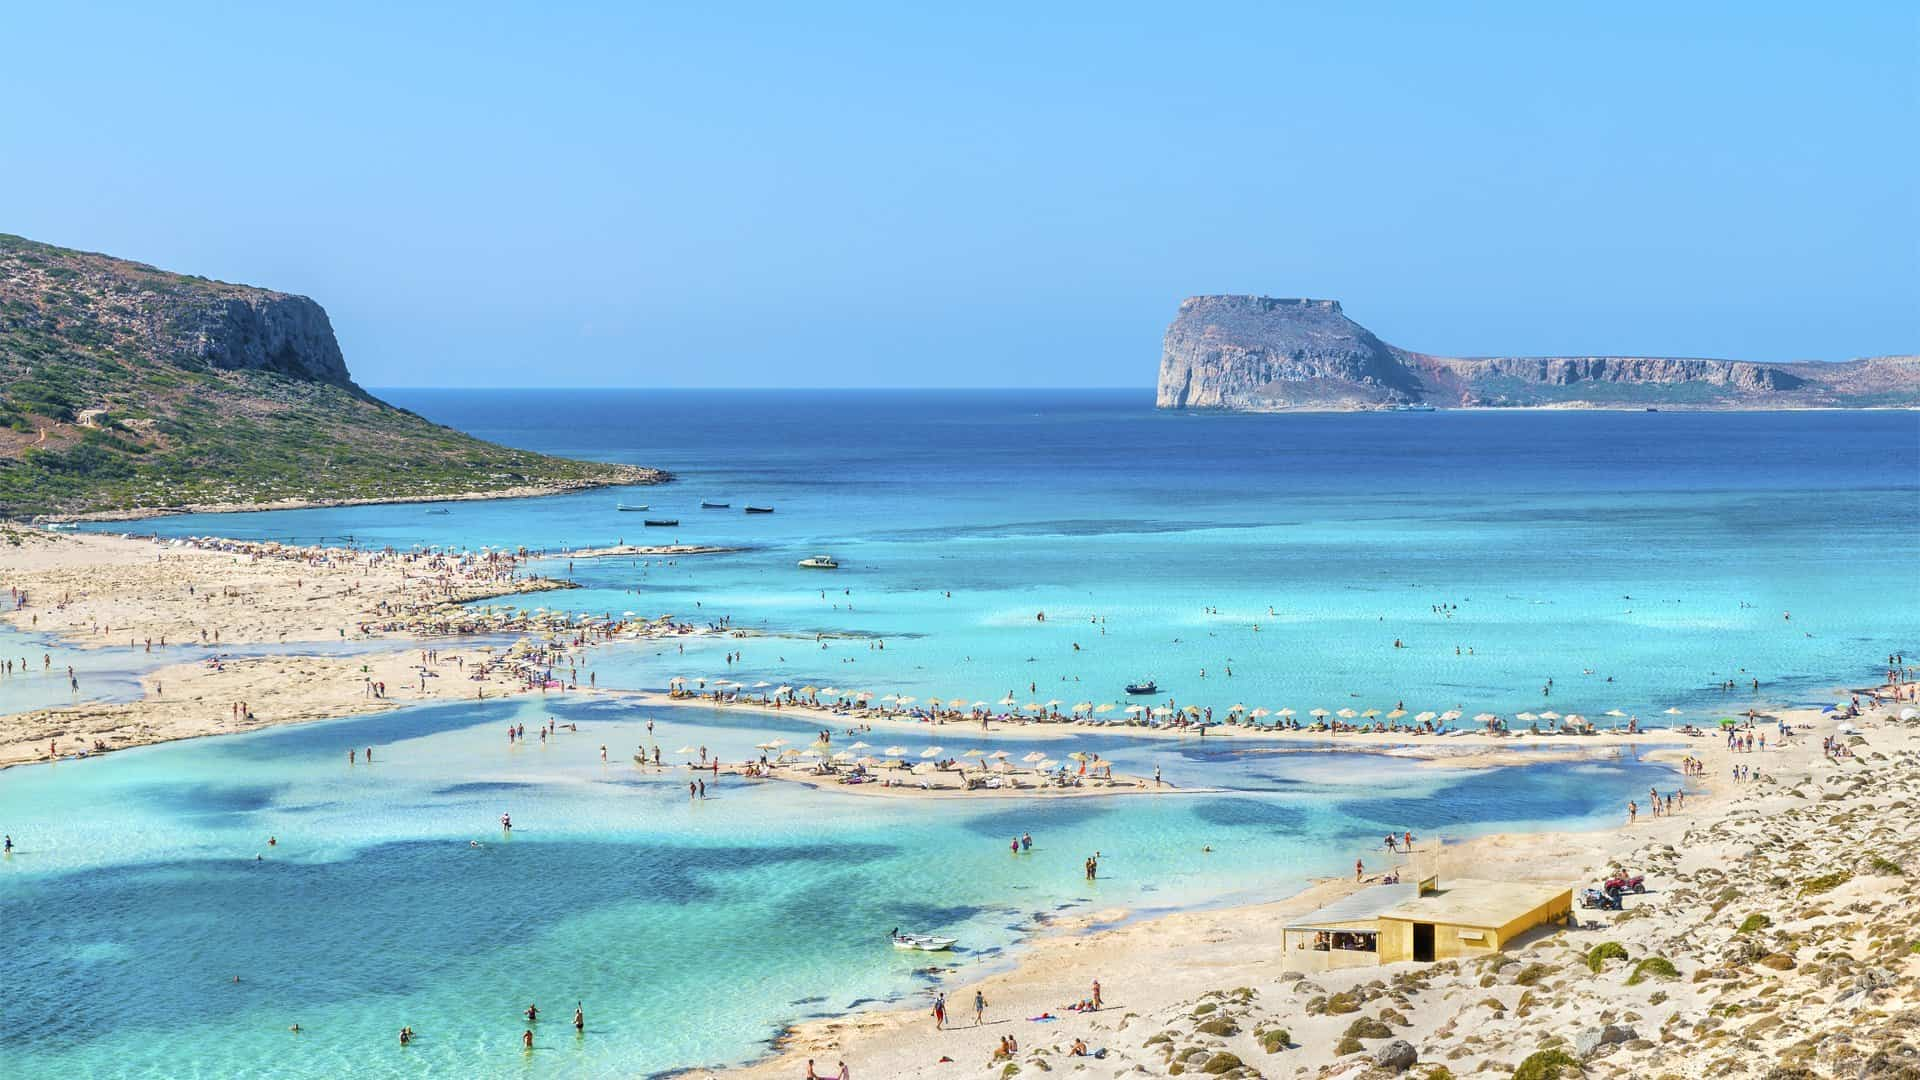 Crete named one of the Top 5 Destinations in the world for 2019